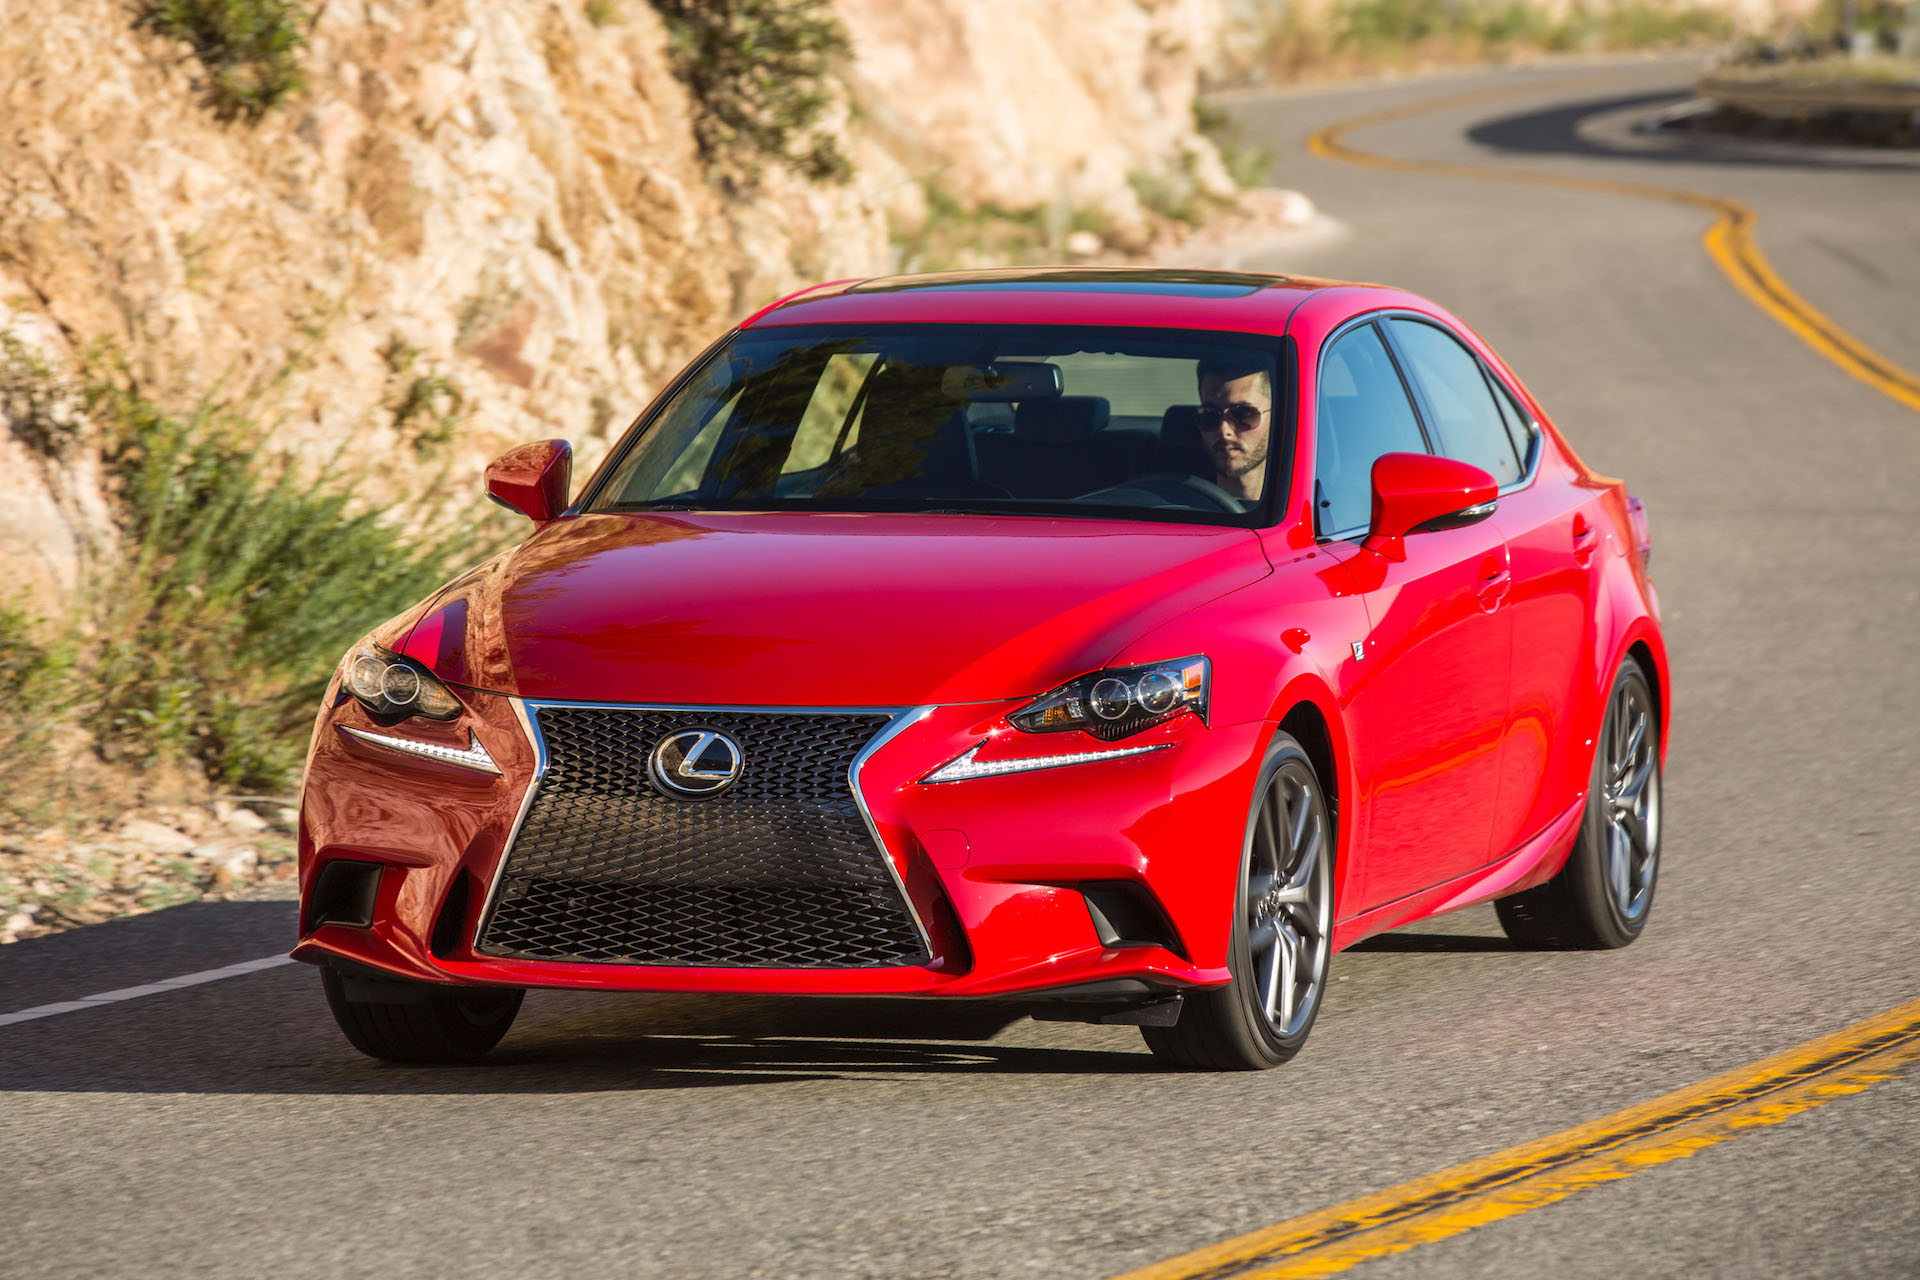 2016 Lexus IS Review Ratings Specs Prices and s The Car